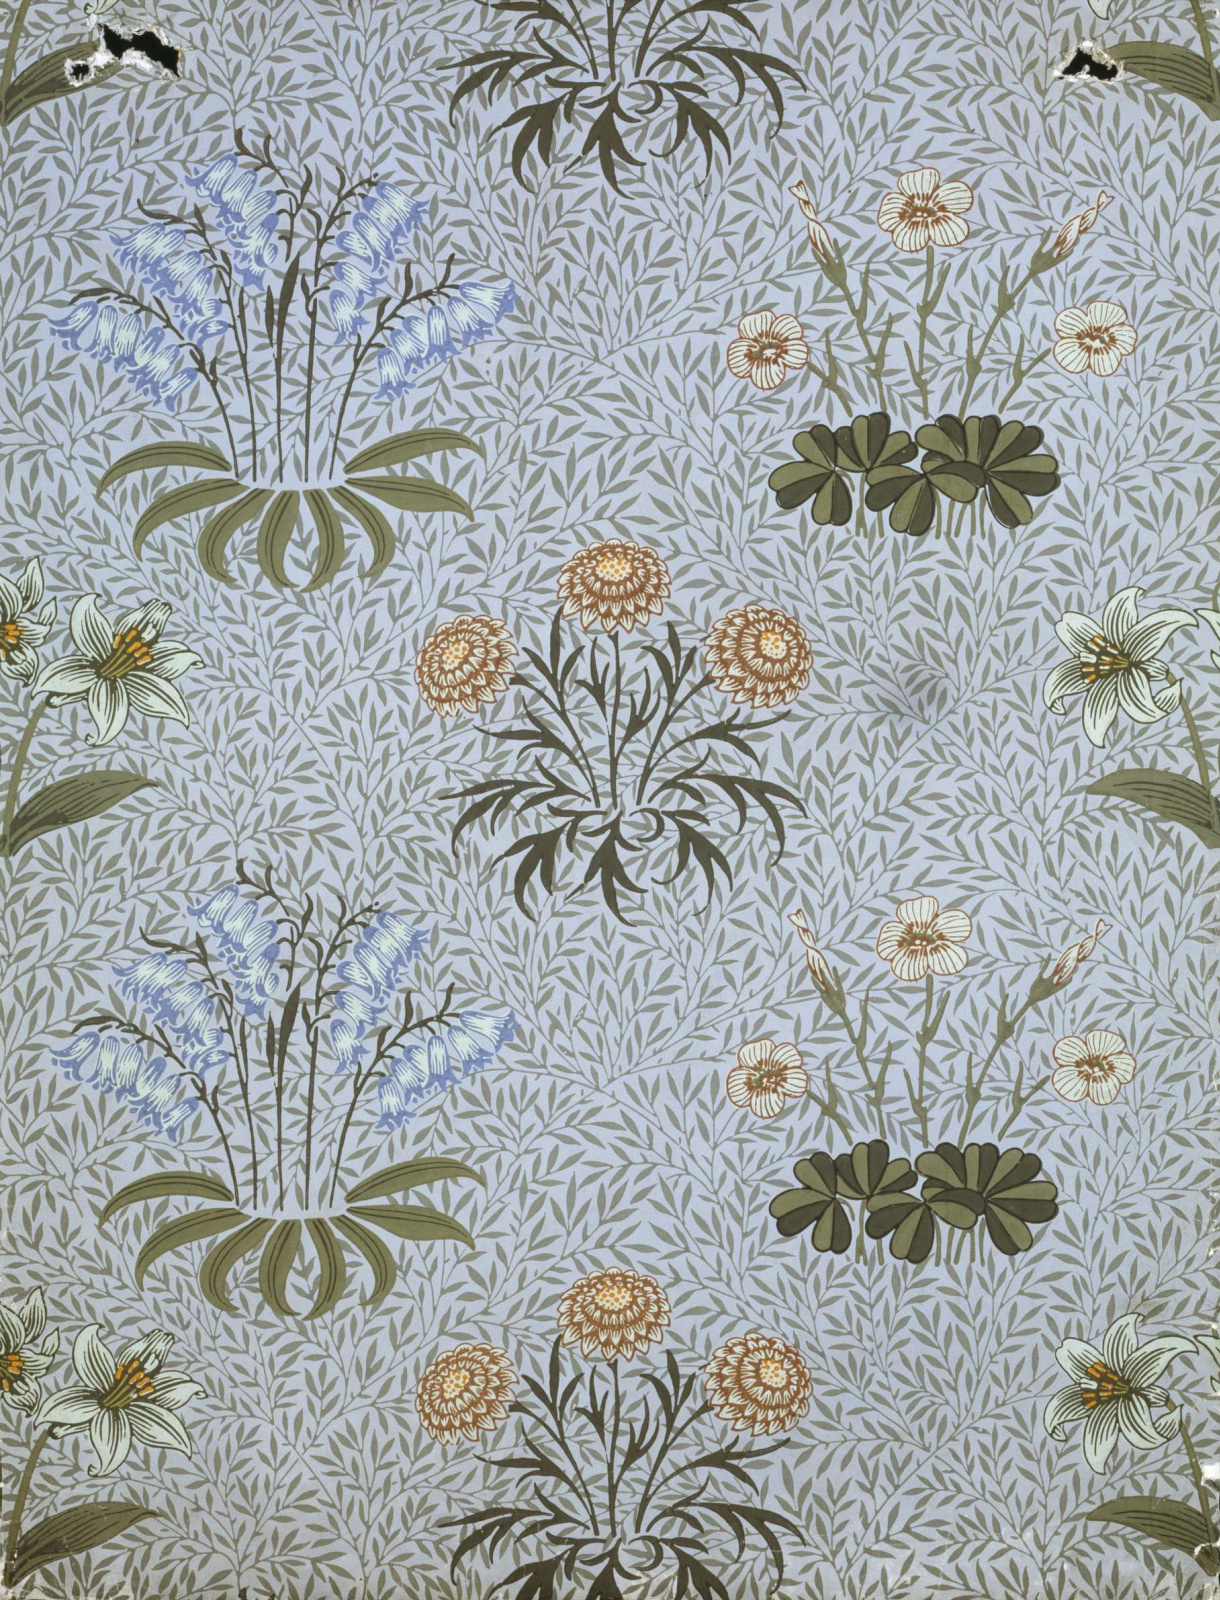 William Morris.  Fourrés de printemps